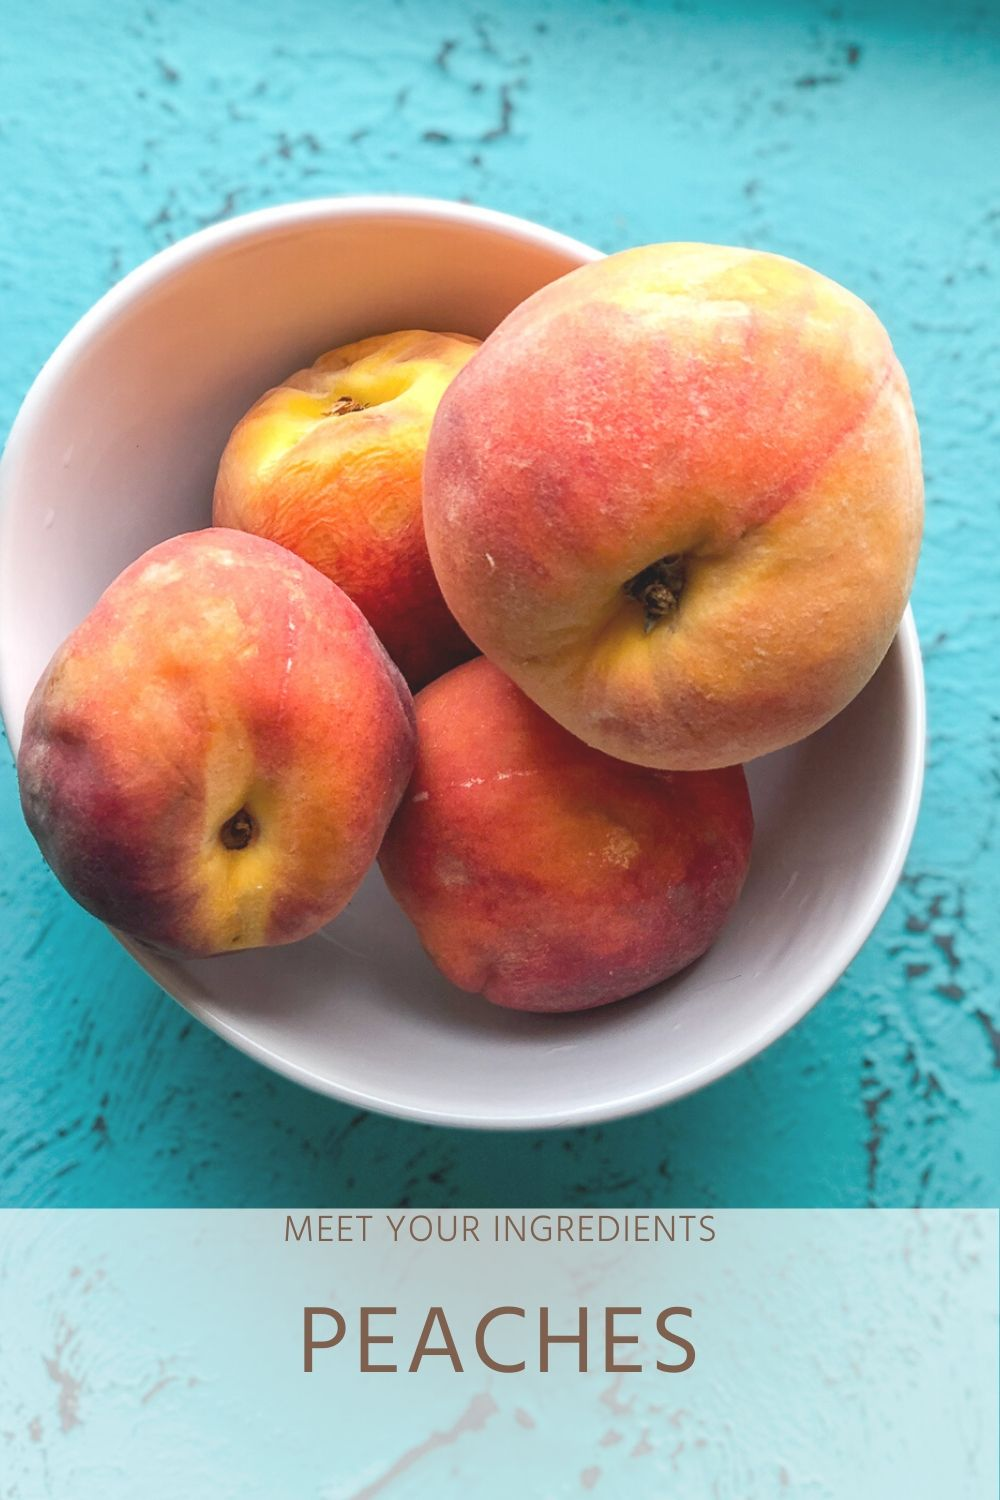 Dietitian Guide to Peaches